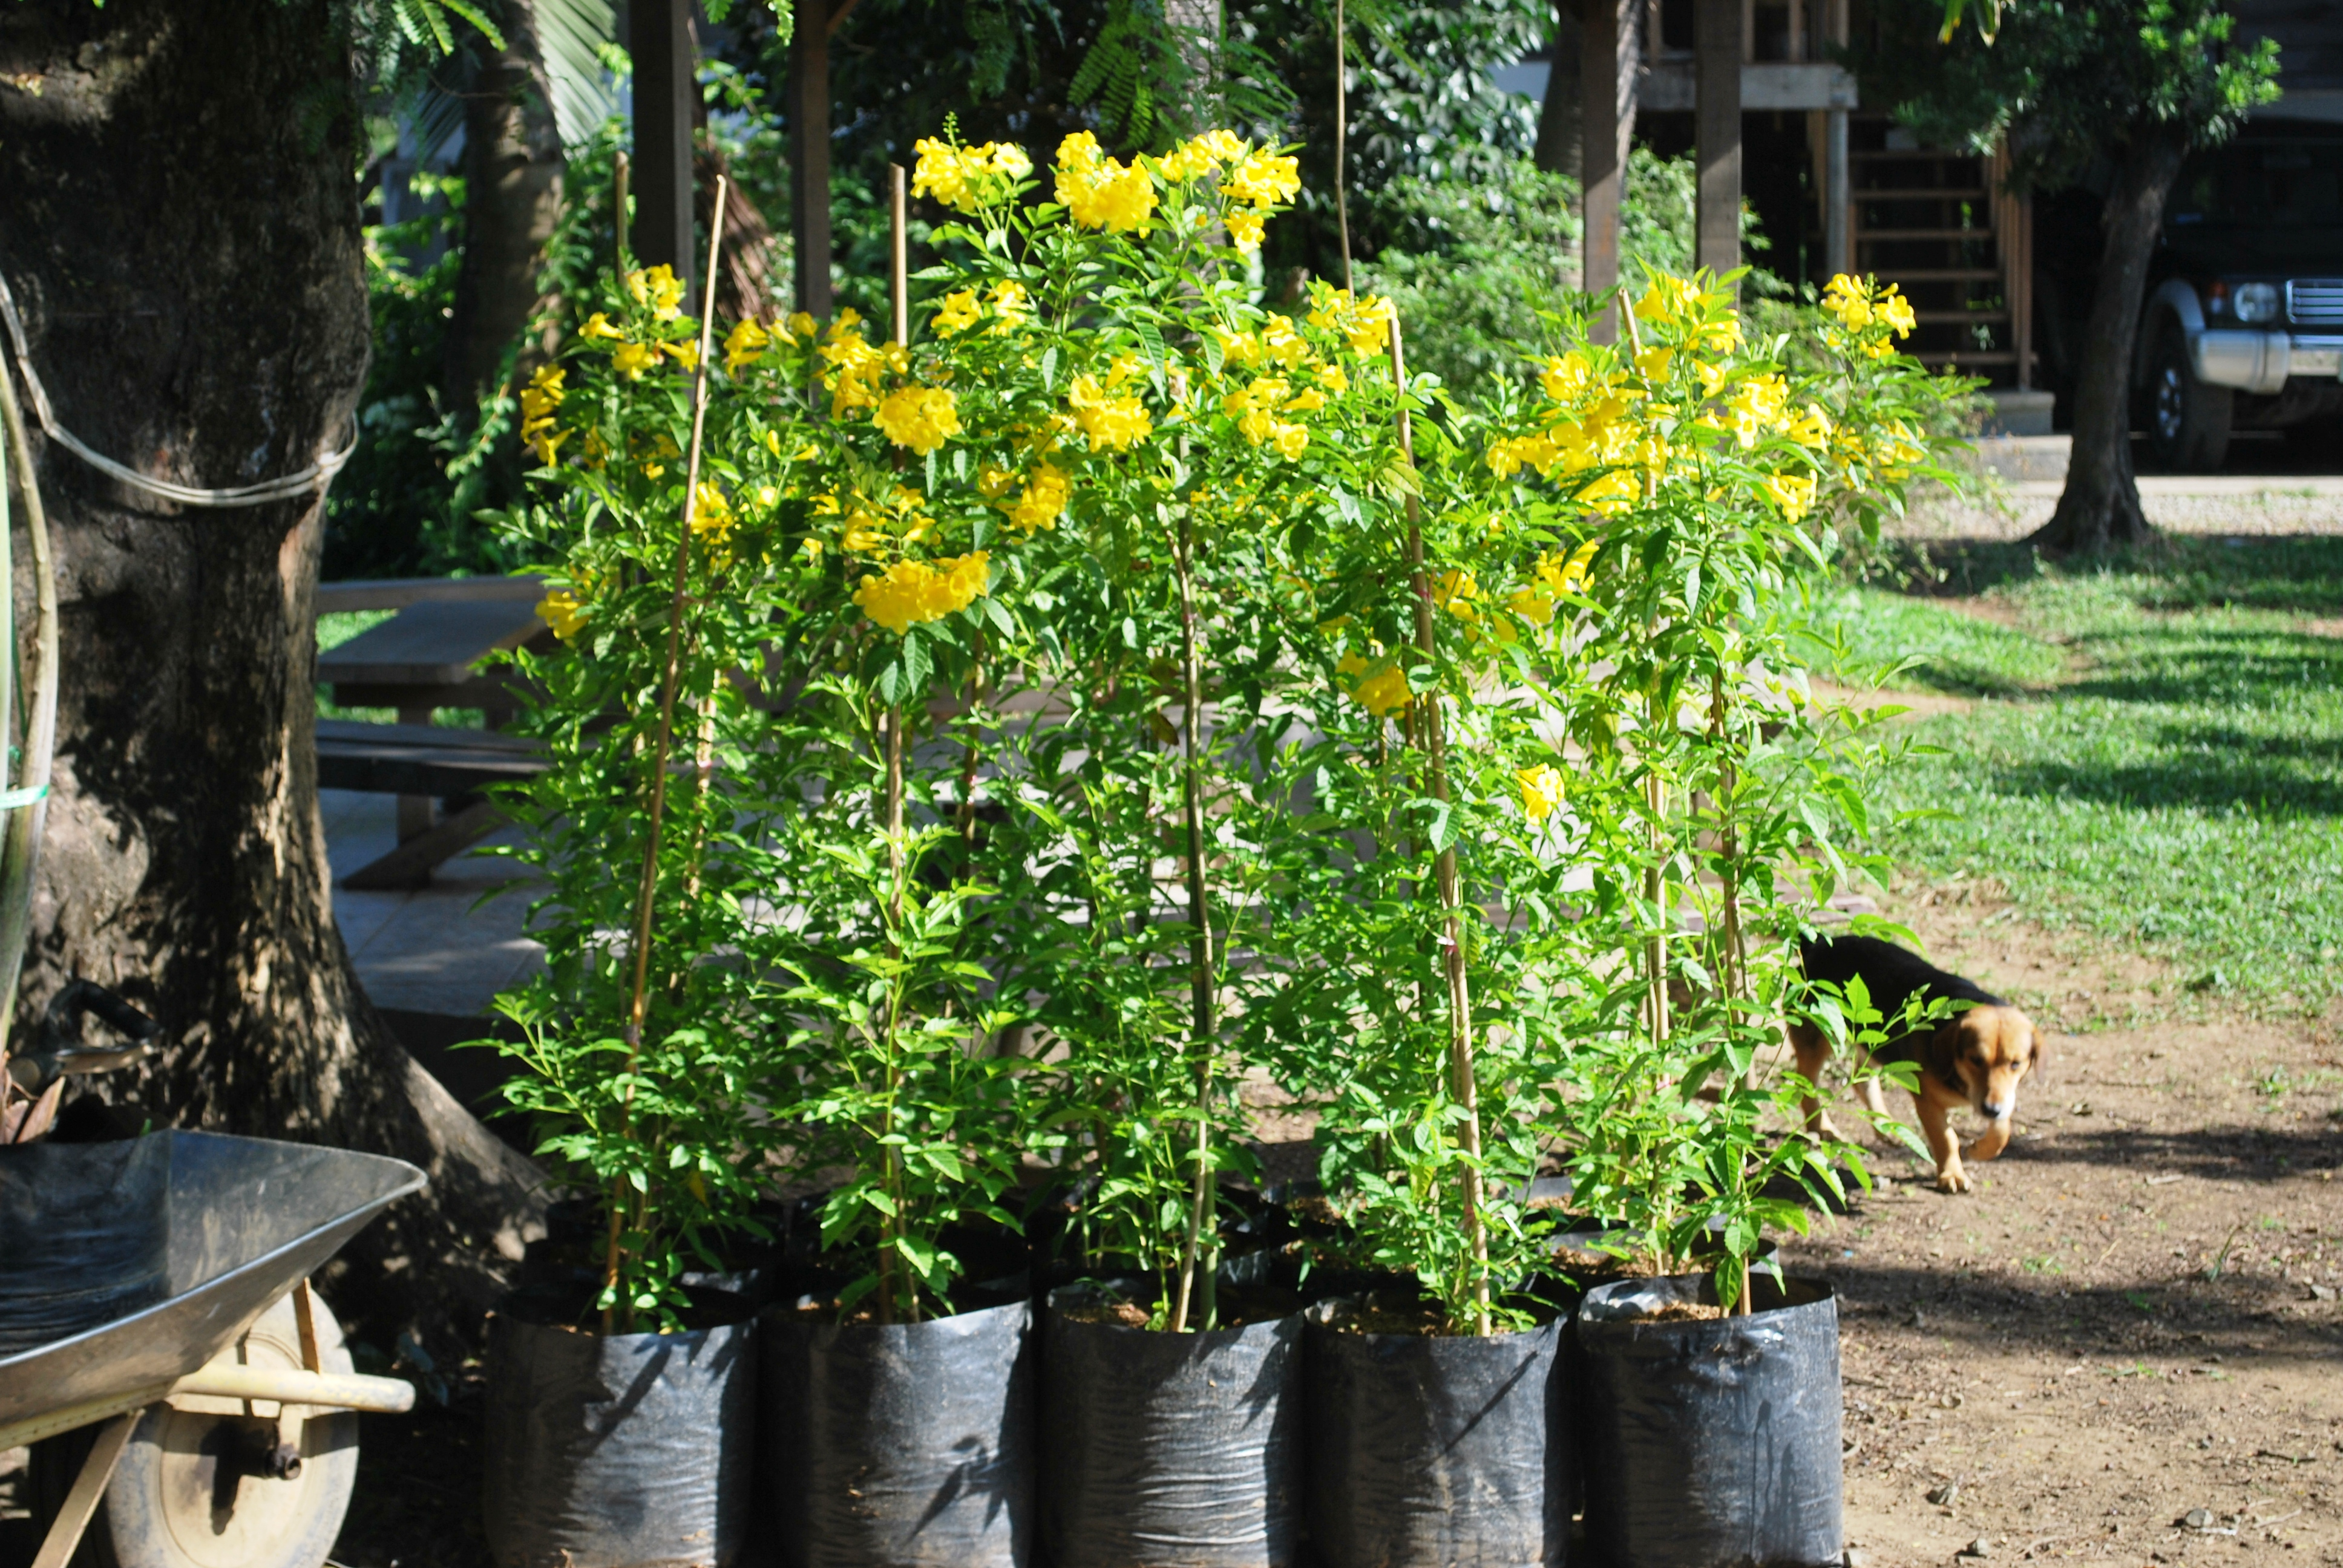 Cainta Plant Nursery For Your Tree Planting Projects Landscaping And Garden Needs